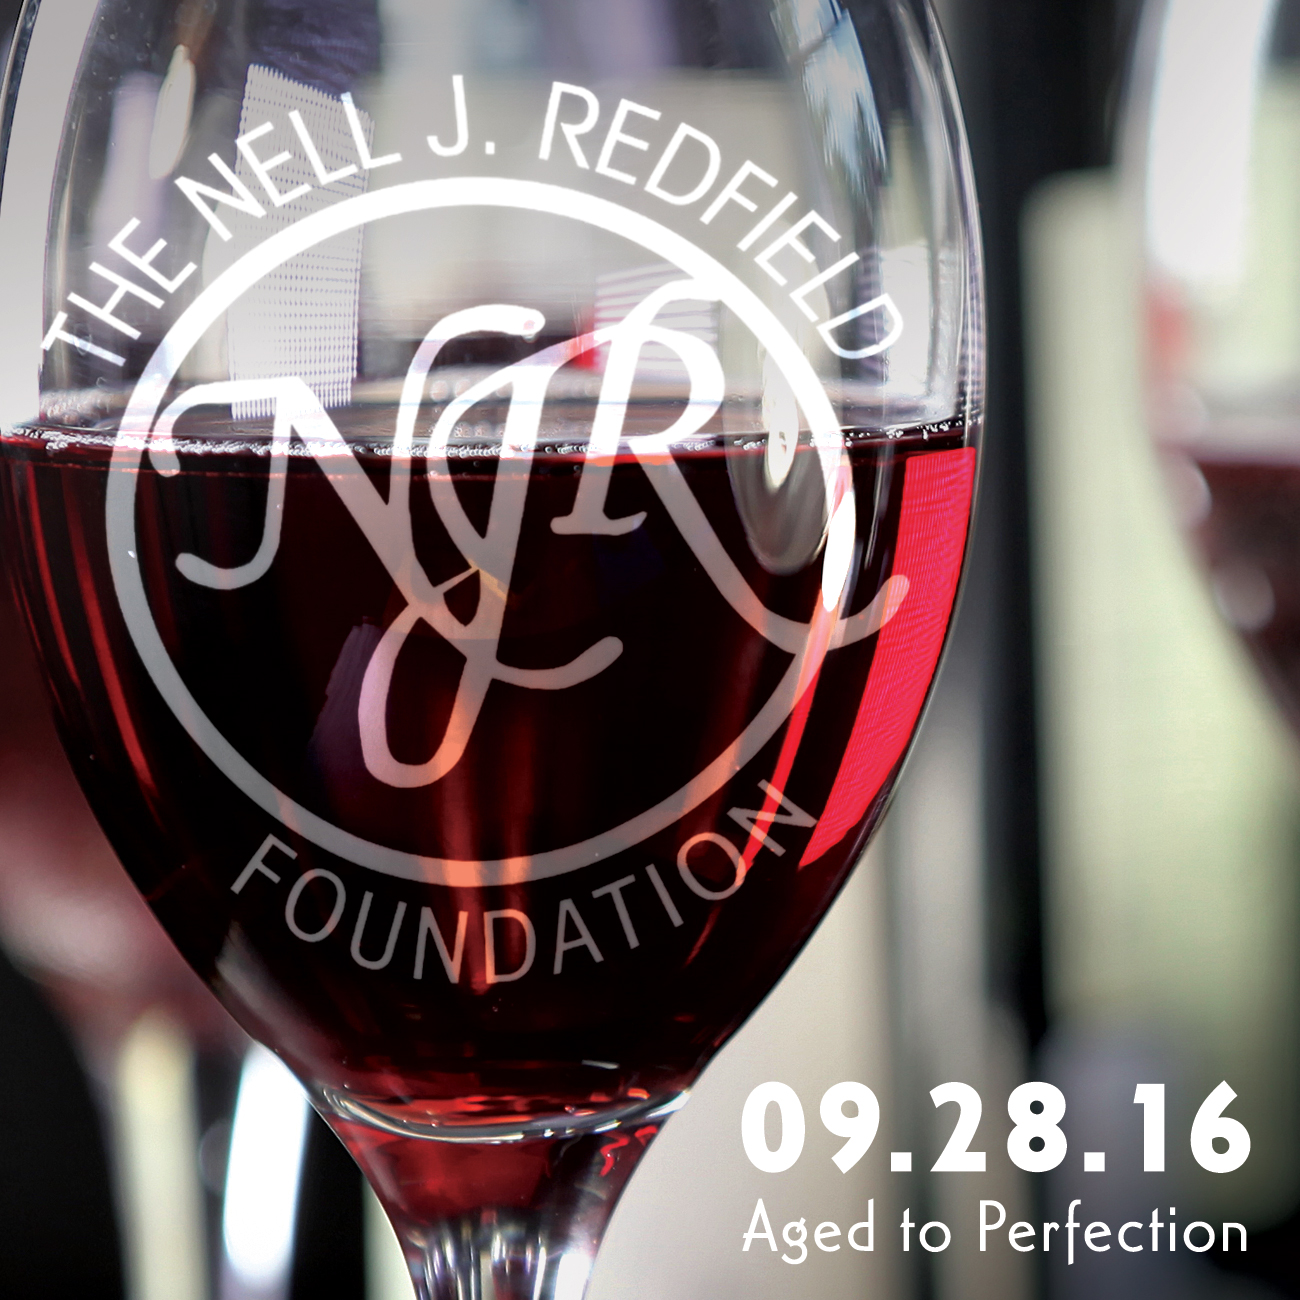 Aged to Perfection Tribute Gala